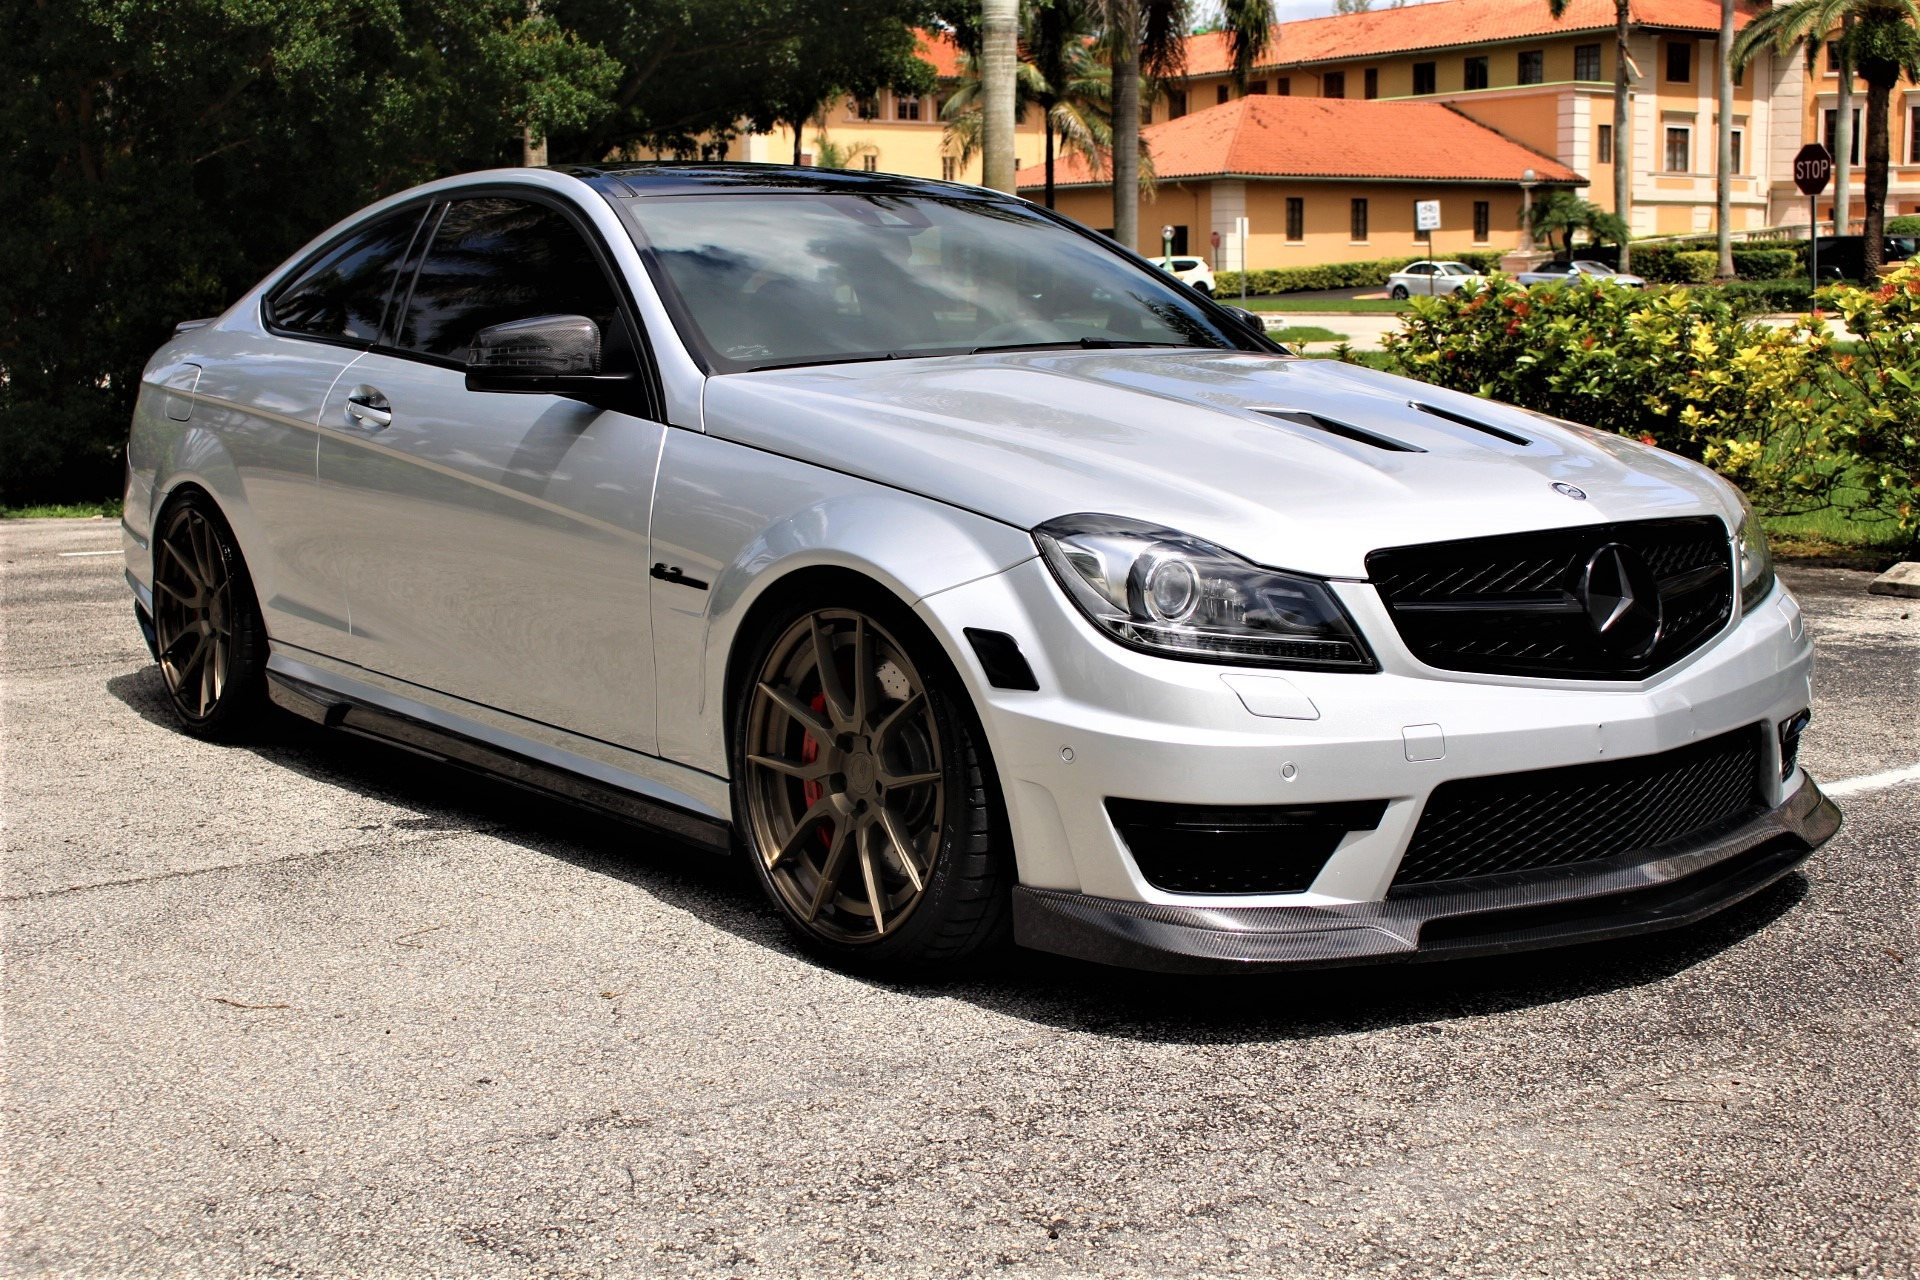 Used 2015 Mercedes-Benz C-Class C 63 AMG 507 Edition for sale Sold at The Gables Sports Cars in Miami FL 33146 3